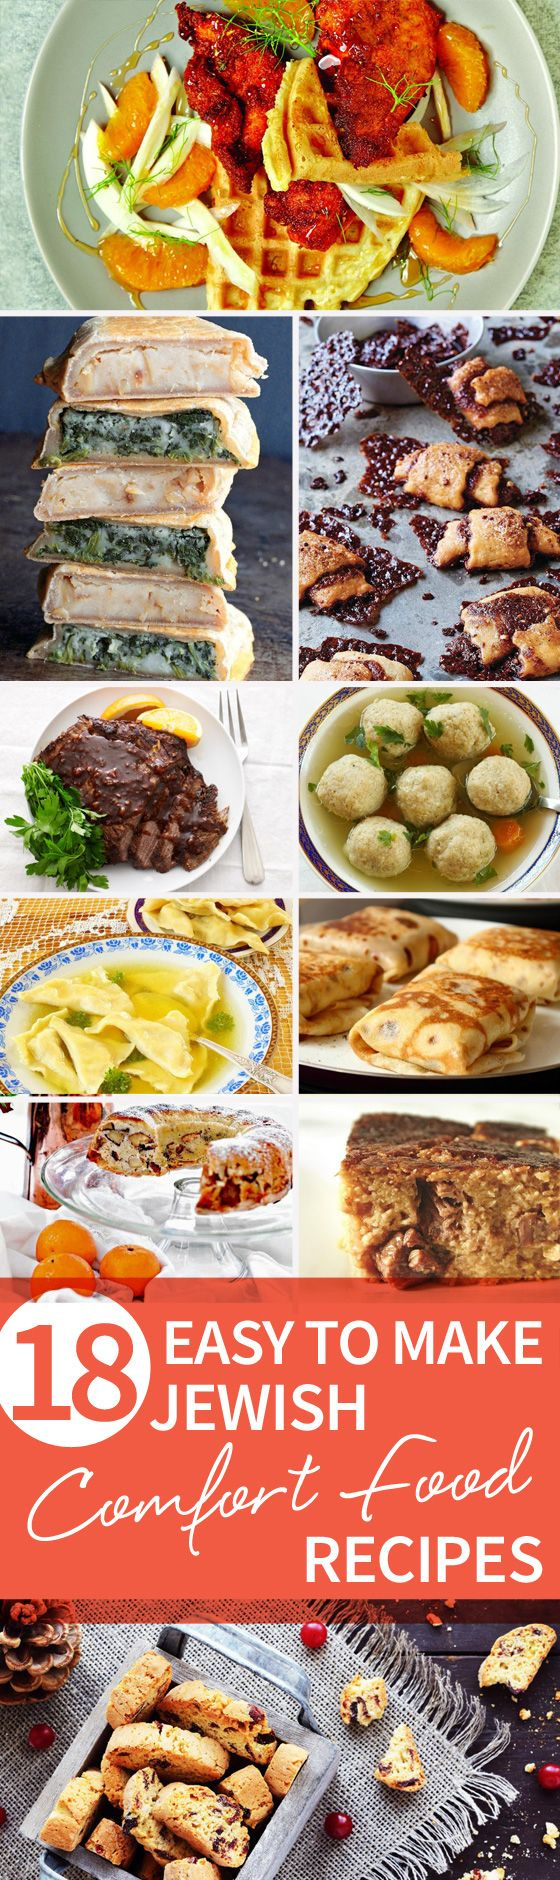 18 easy to make jewish comfort food recipes meals articles and easy 18 easy to make jewish comfort food recipes forumfinder Image collections